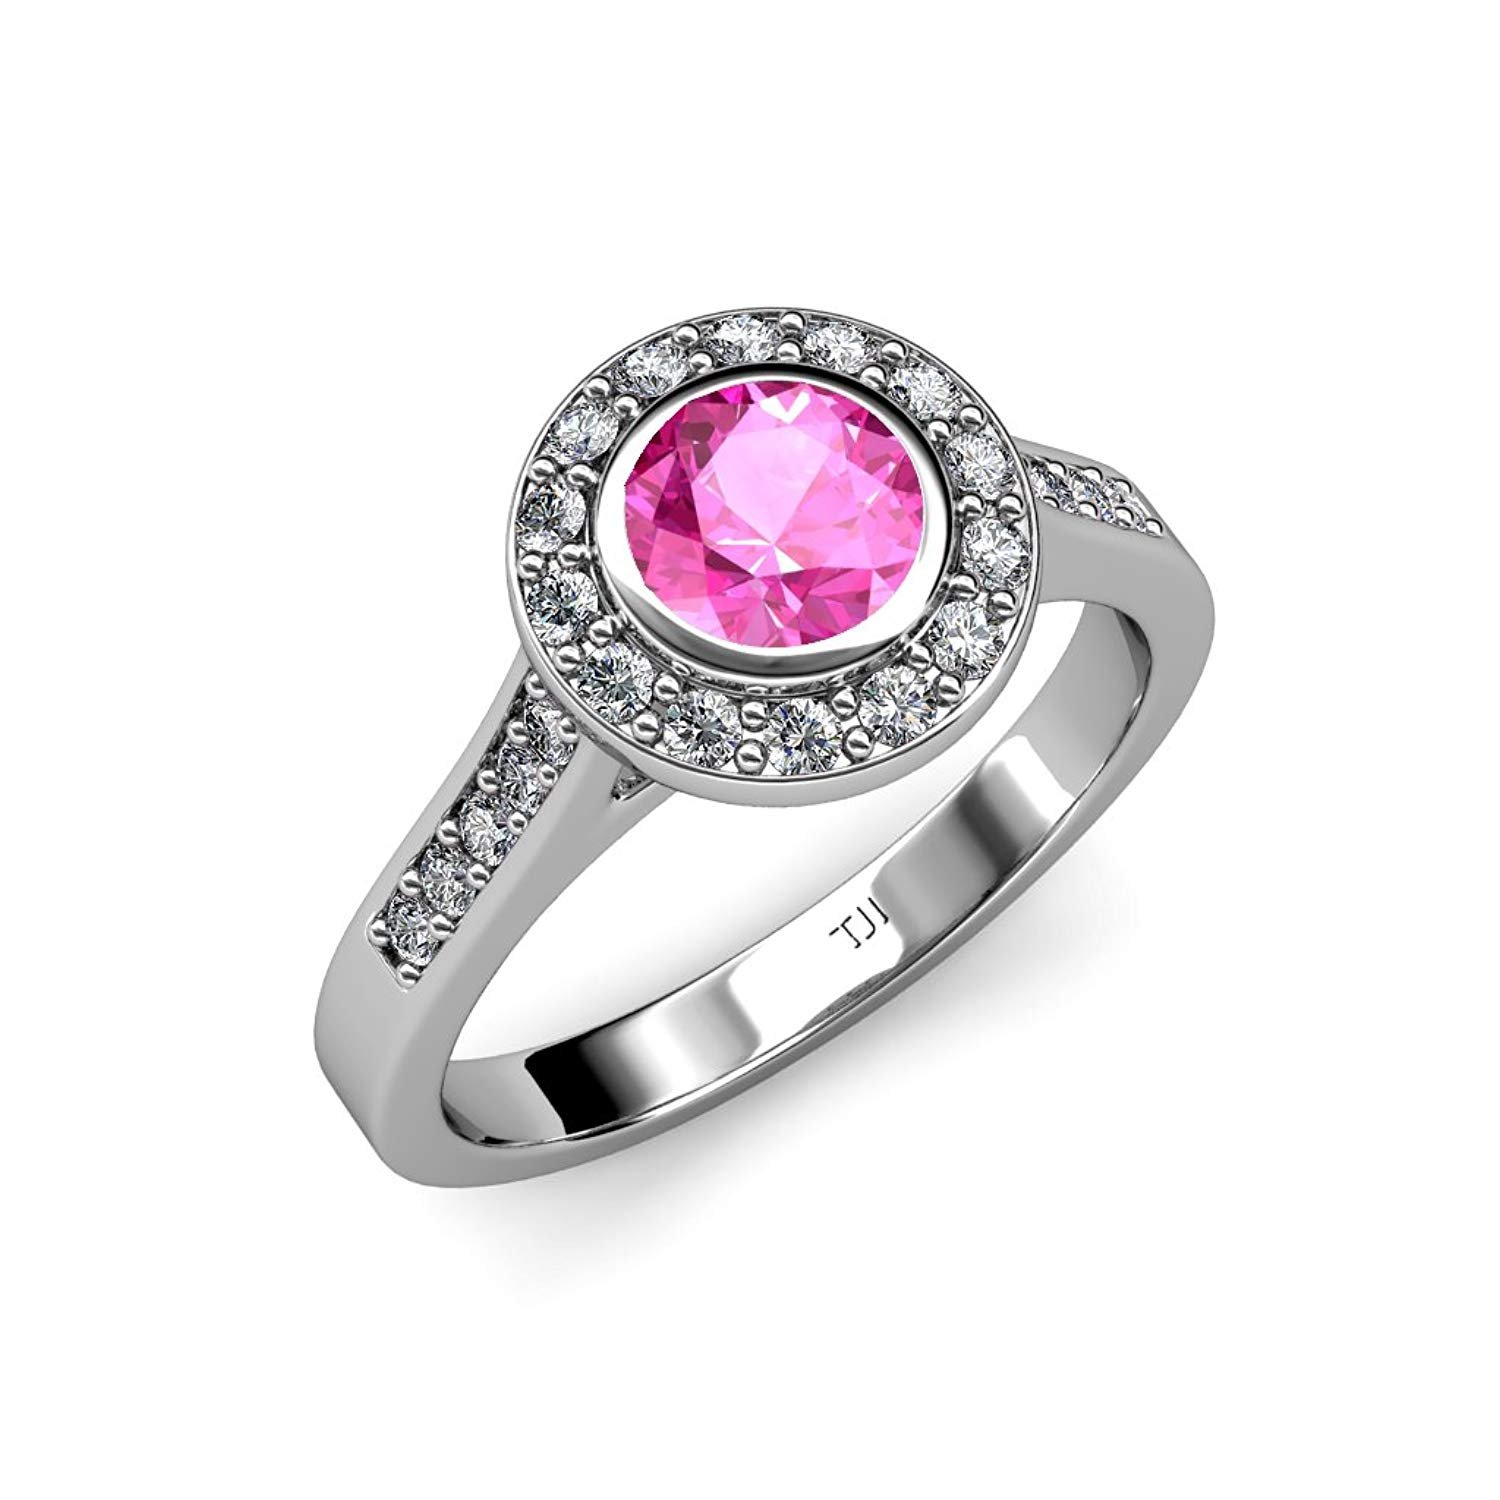 Pink Sapphire and Diamond (VS2-SI1, F-G) Halo Engagement Ring 1.41 ct tw in 18K White Gold.size 6.0 by TriJewels